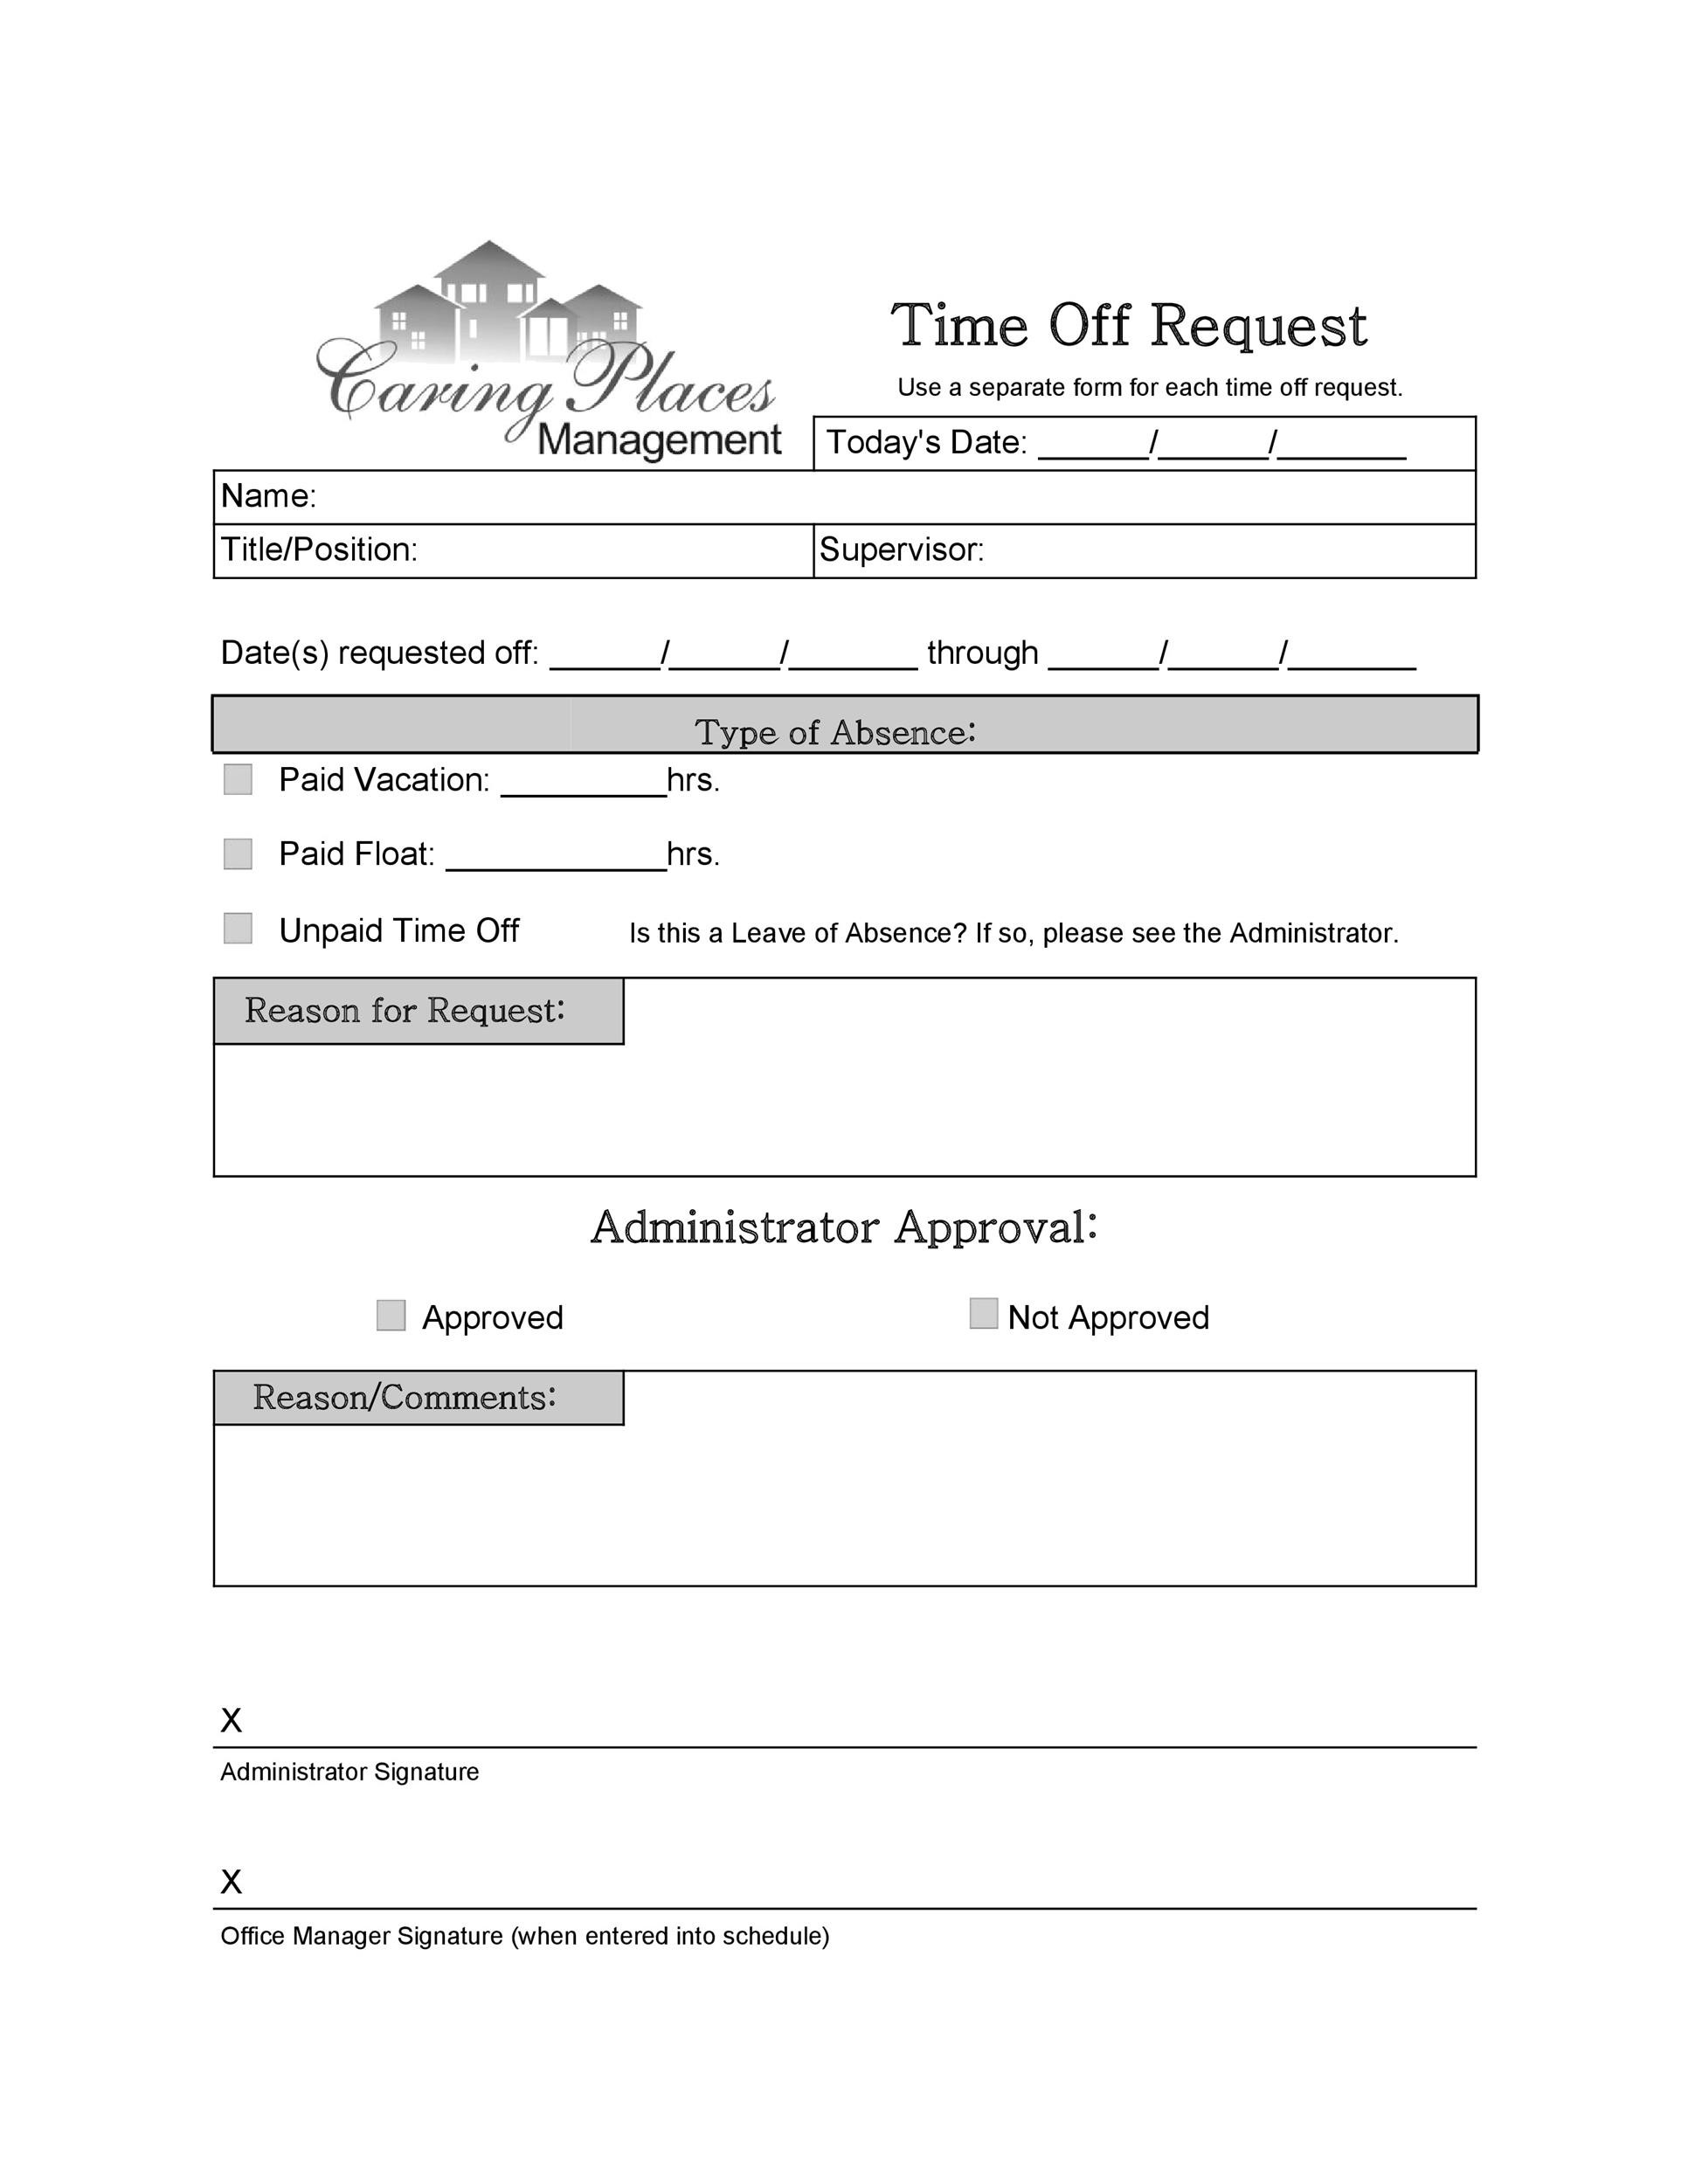 40+ Effective Time Off Request Forms & Templates - Template Lab